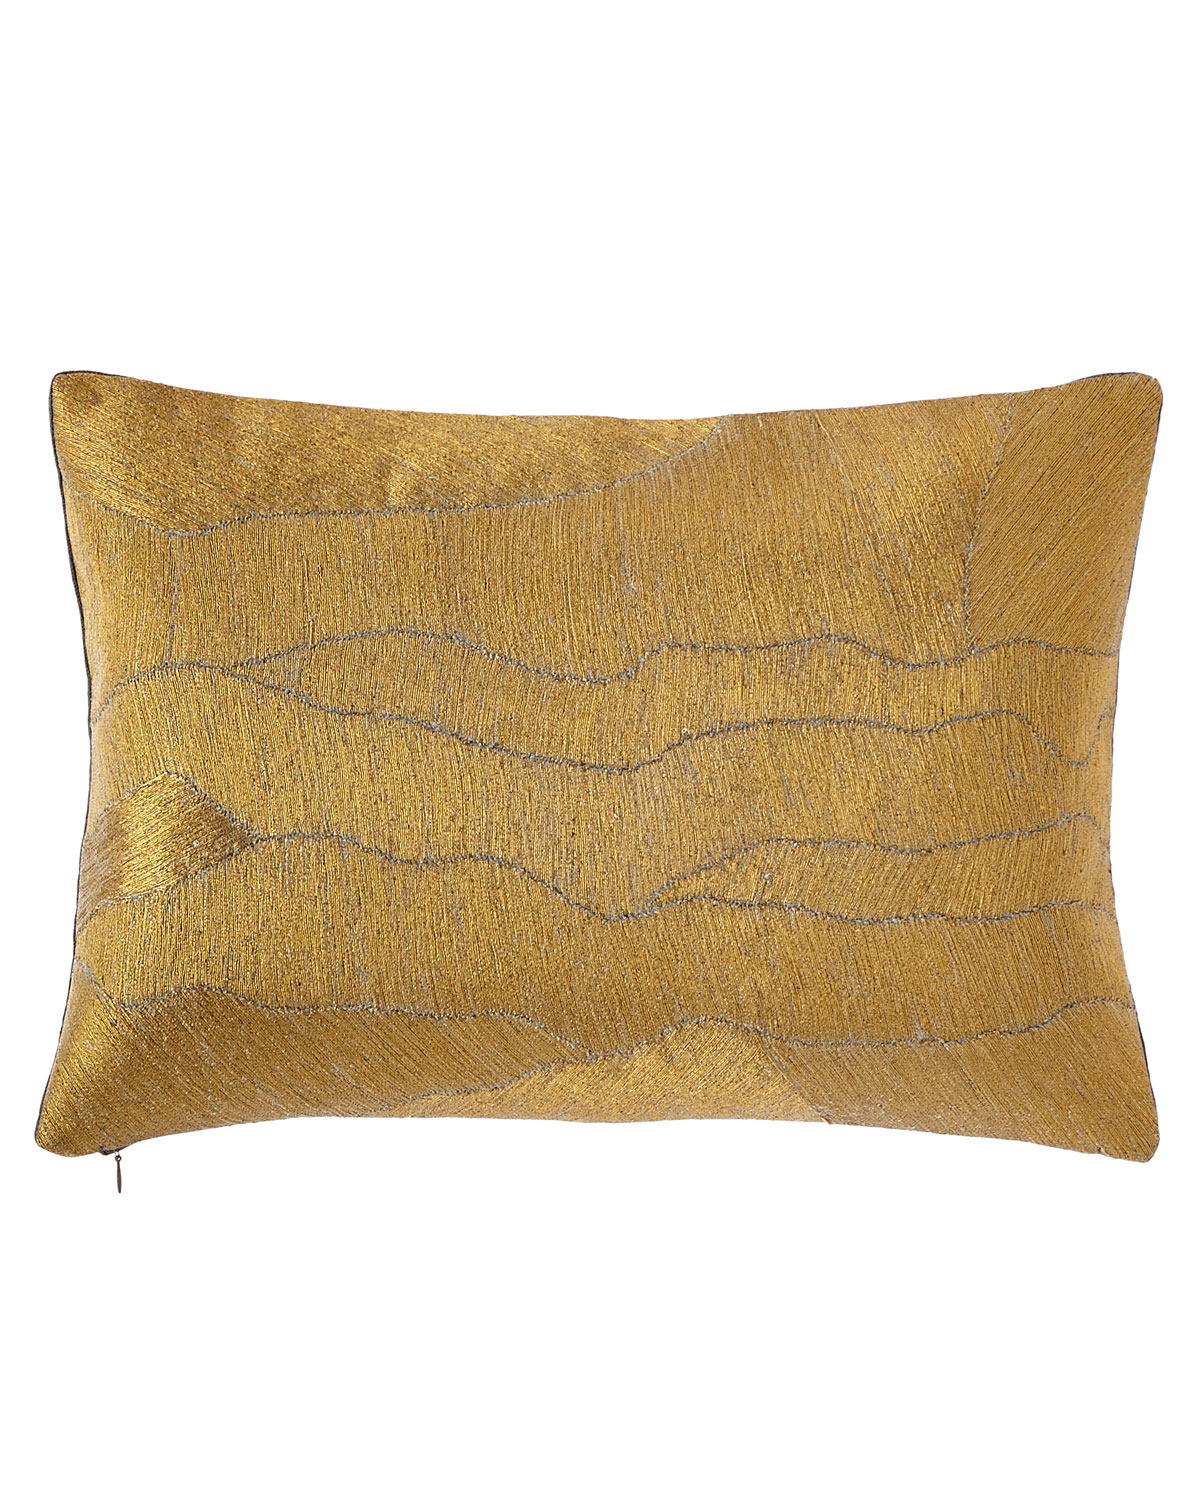 Michael Aram Pillows AFTER THE STORM DECORATIVE PILLOW